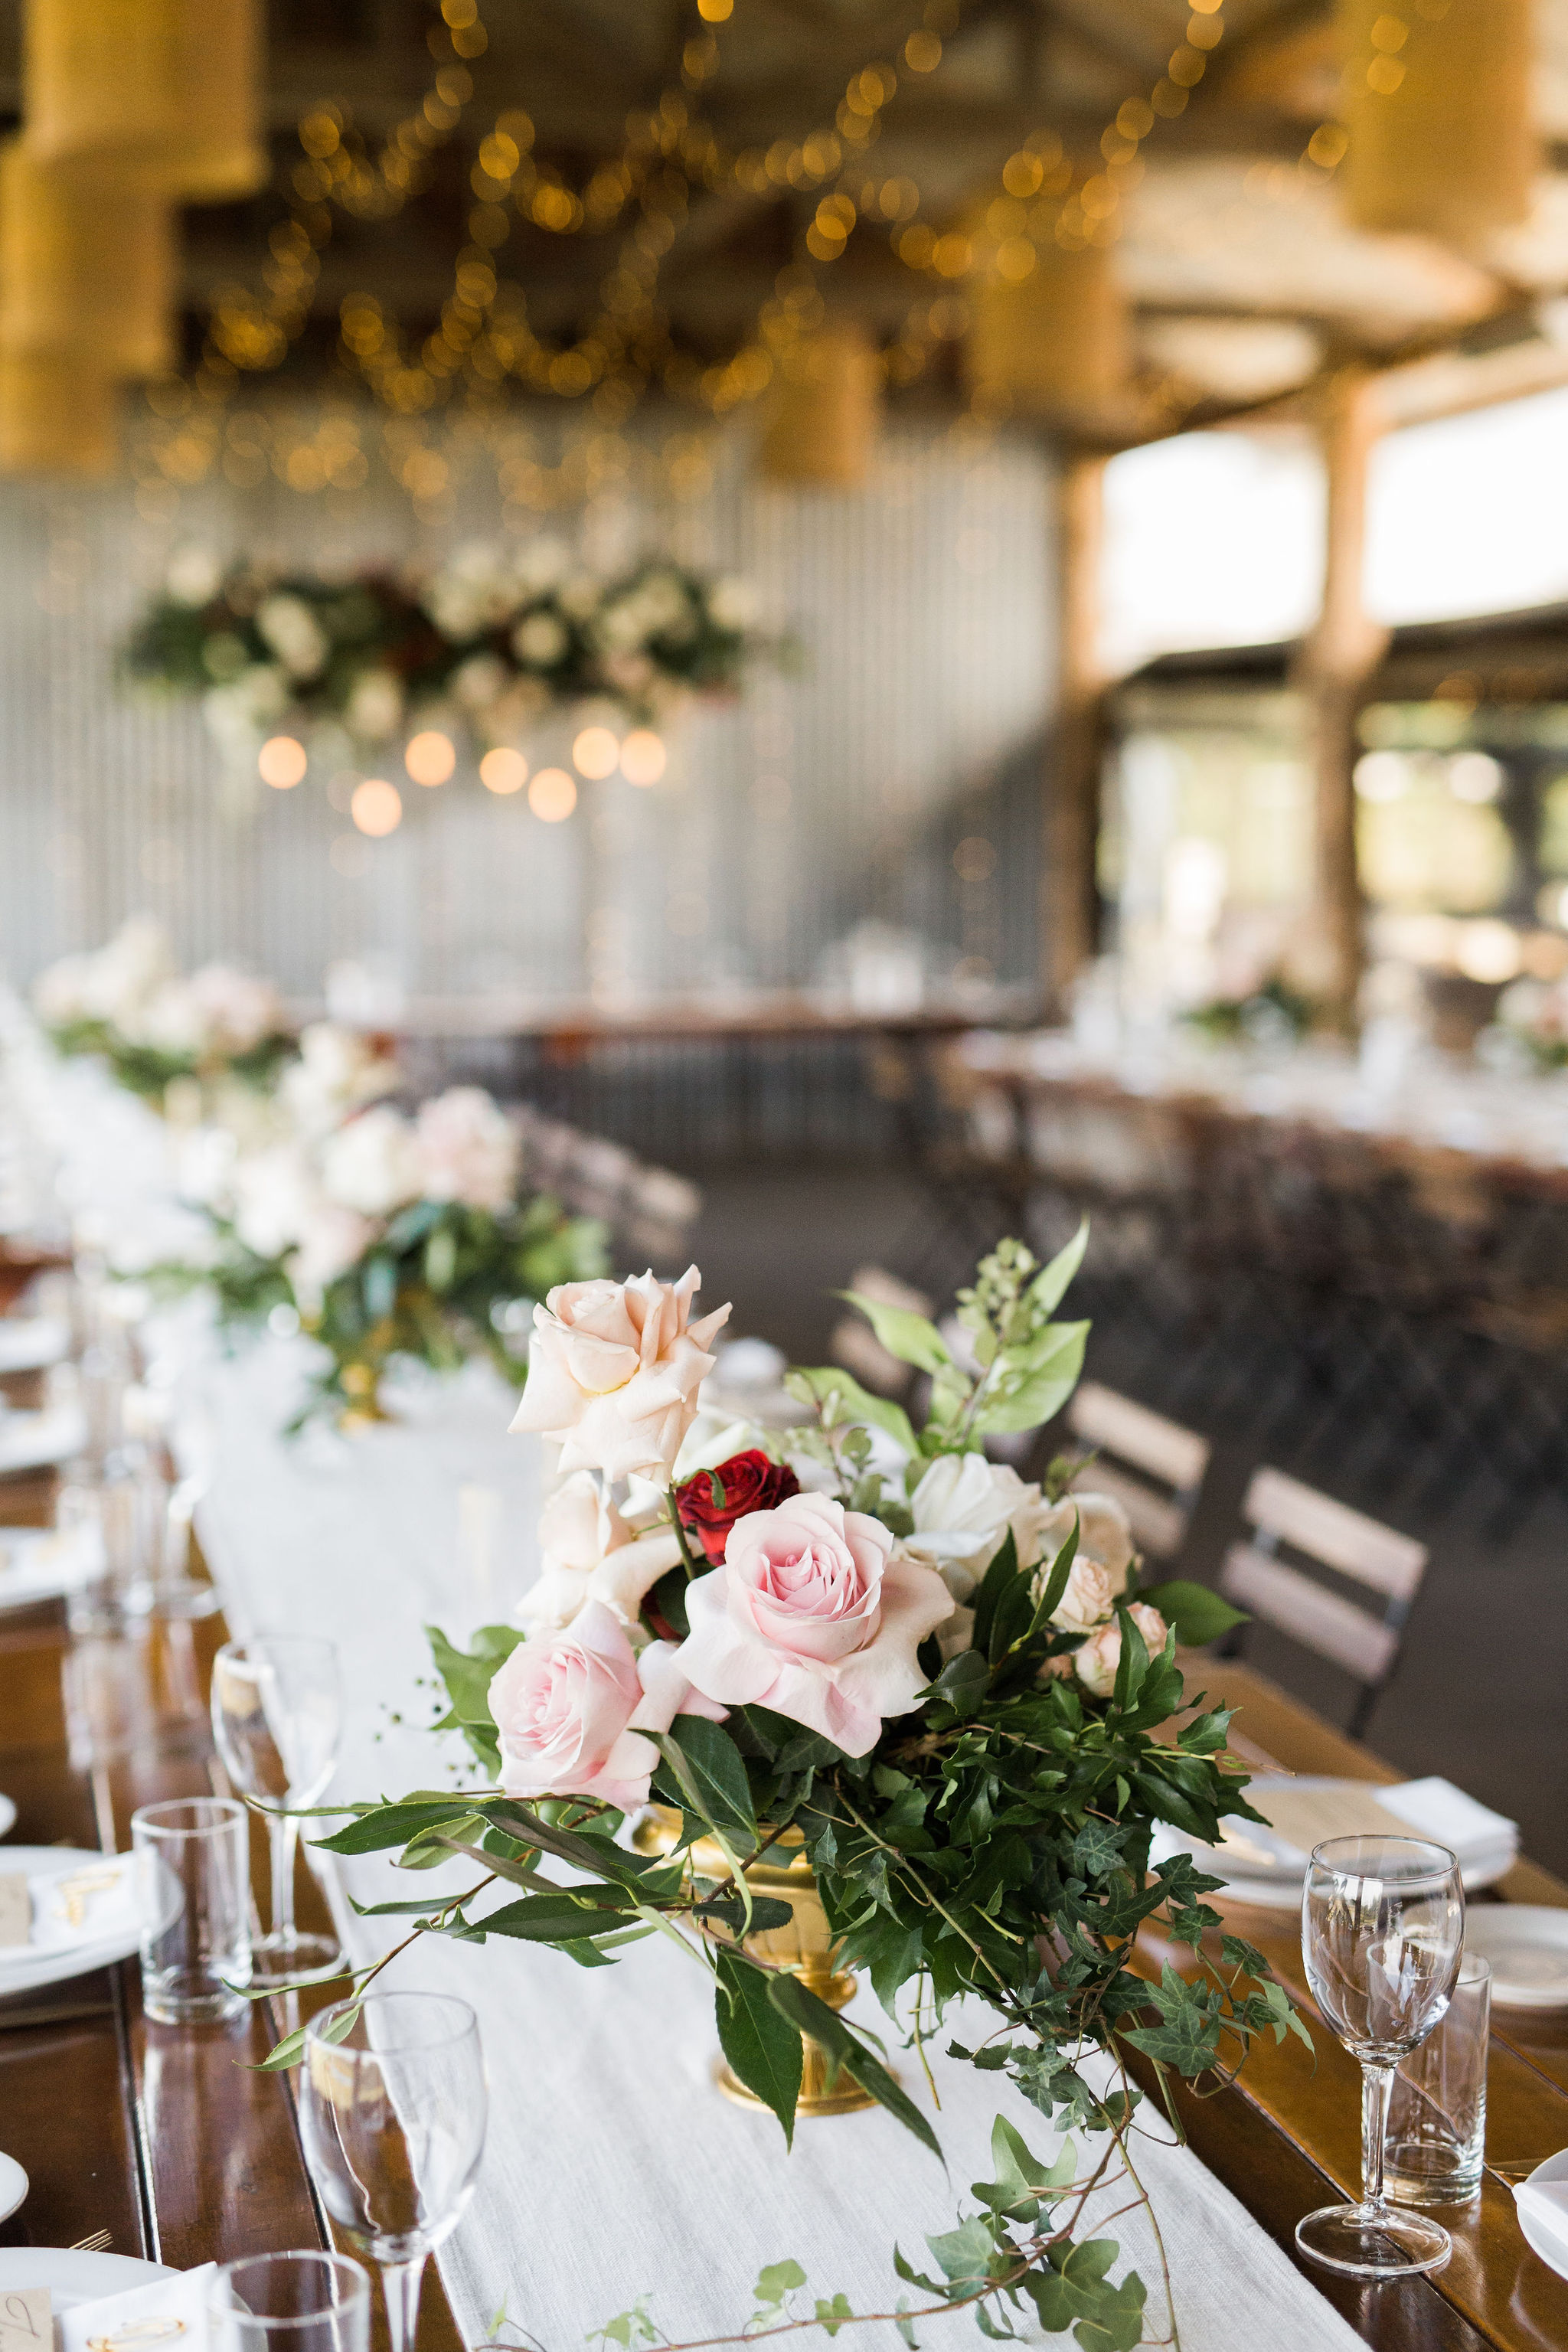 Soft pink roses, with pops of burgundy and lush greenery